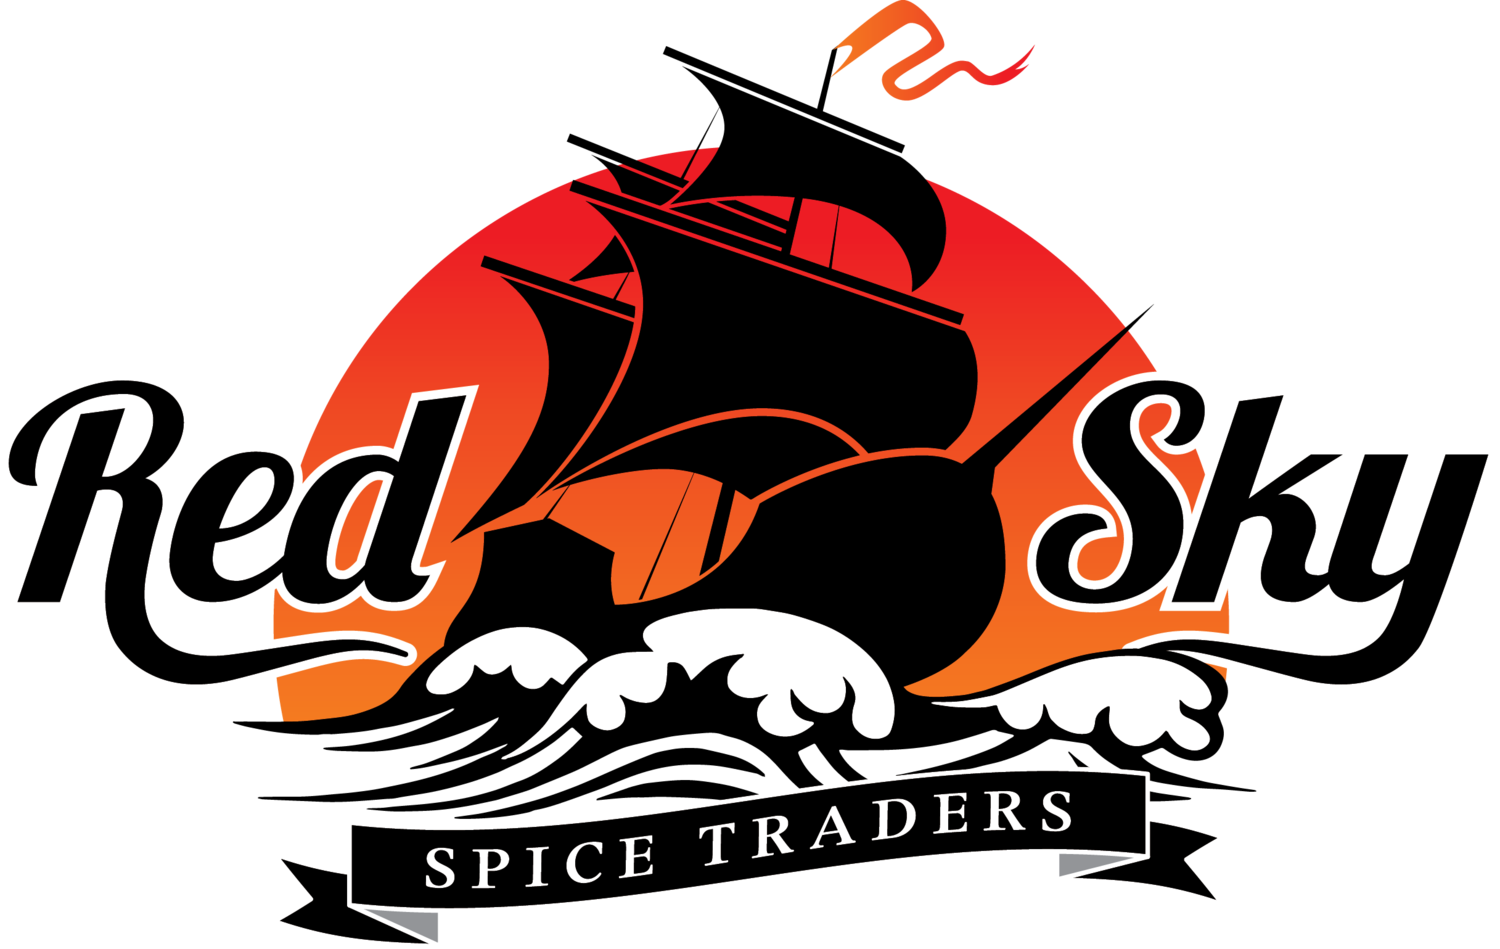 Red Sky Spice Traders